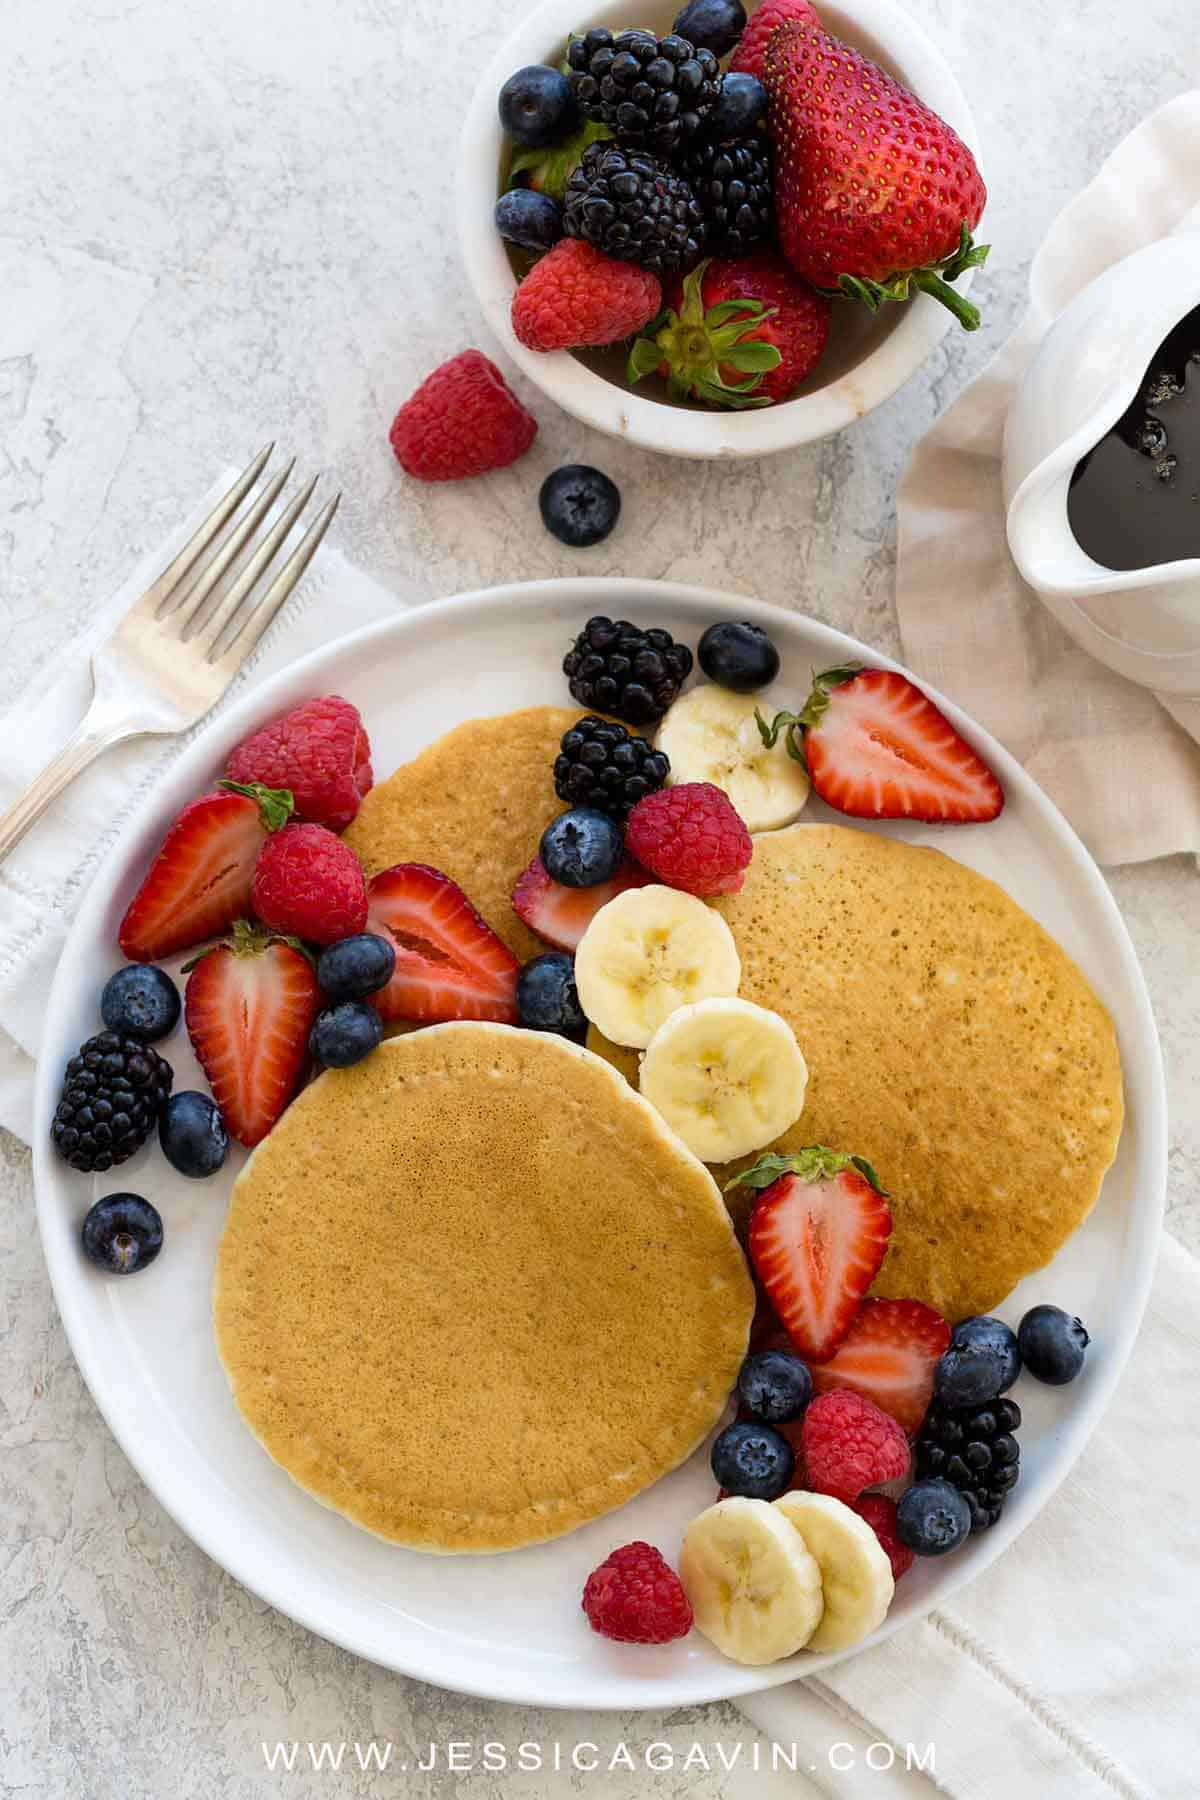 Vegan pancakes made with just a few simple ingredients. A combination of wheat flour, baking soda, baking powder, coconut oil, cashew milk, and ground flaxseed is used to make light, fluffy and golden brown pancakes. #veganpancakes #vegan #breakfast #pancakes